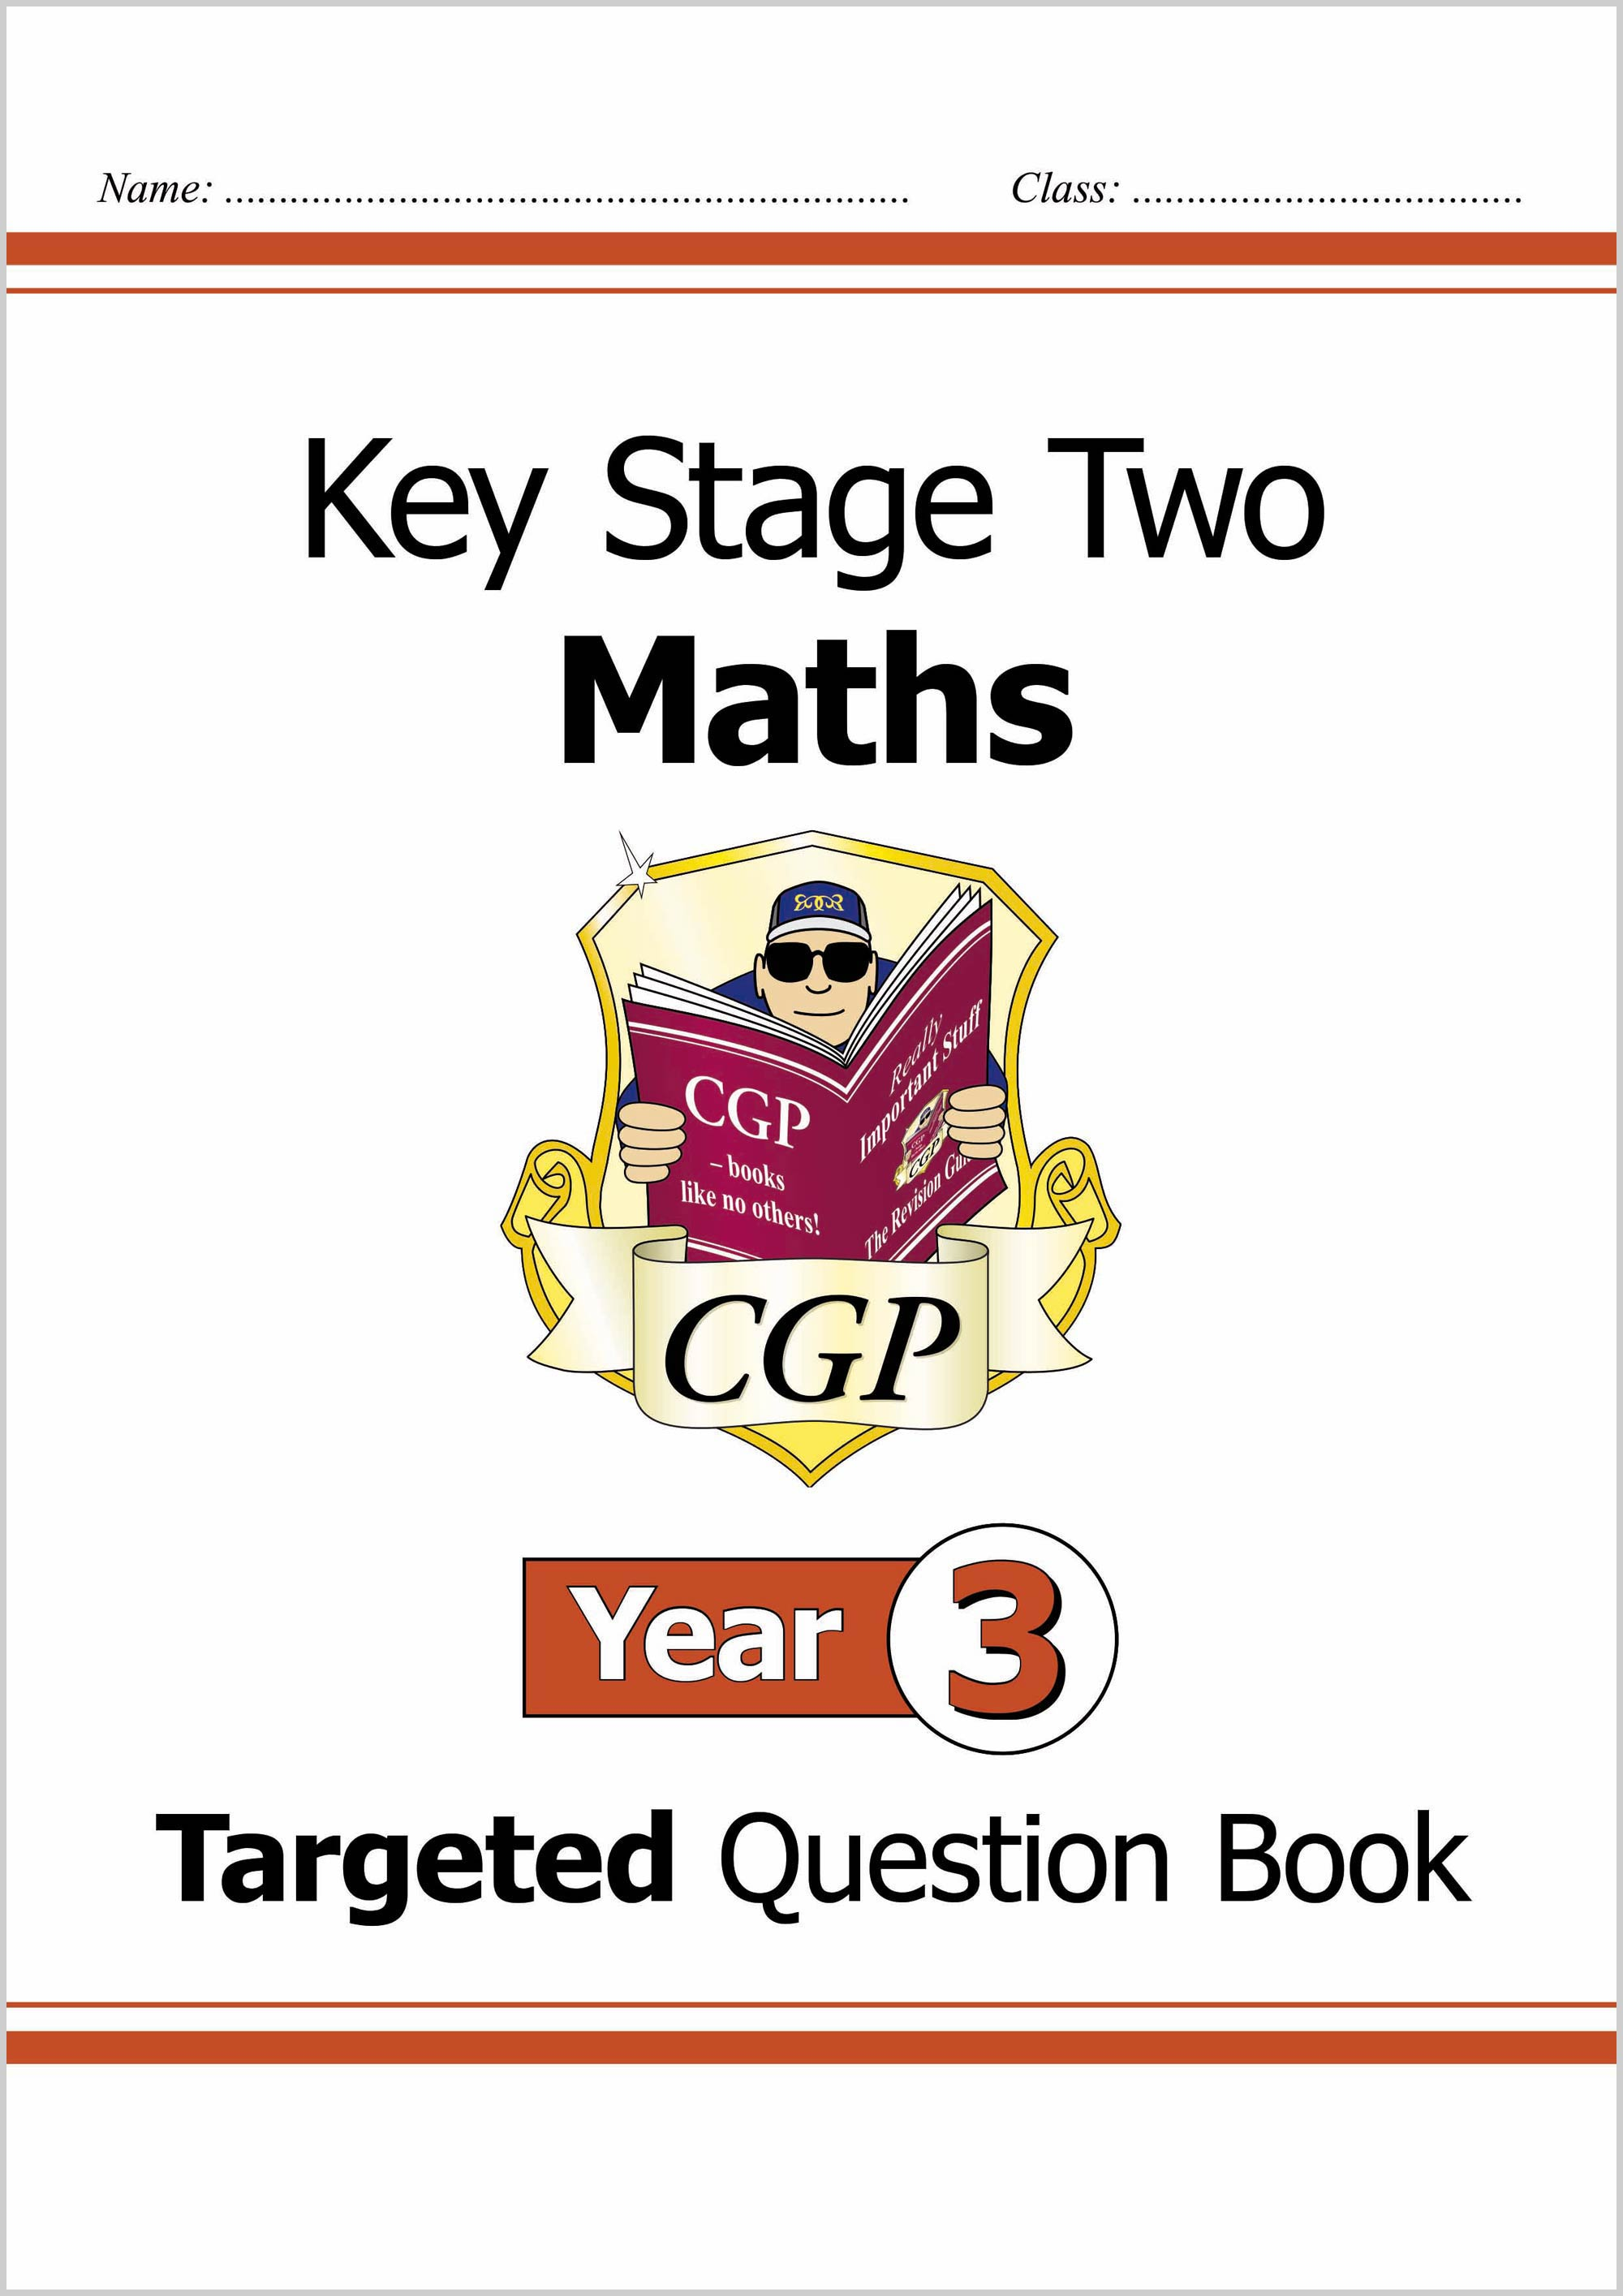 M3Q24D - KS2 Maths Targeted Question Book - Year 3 Online Edition